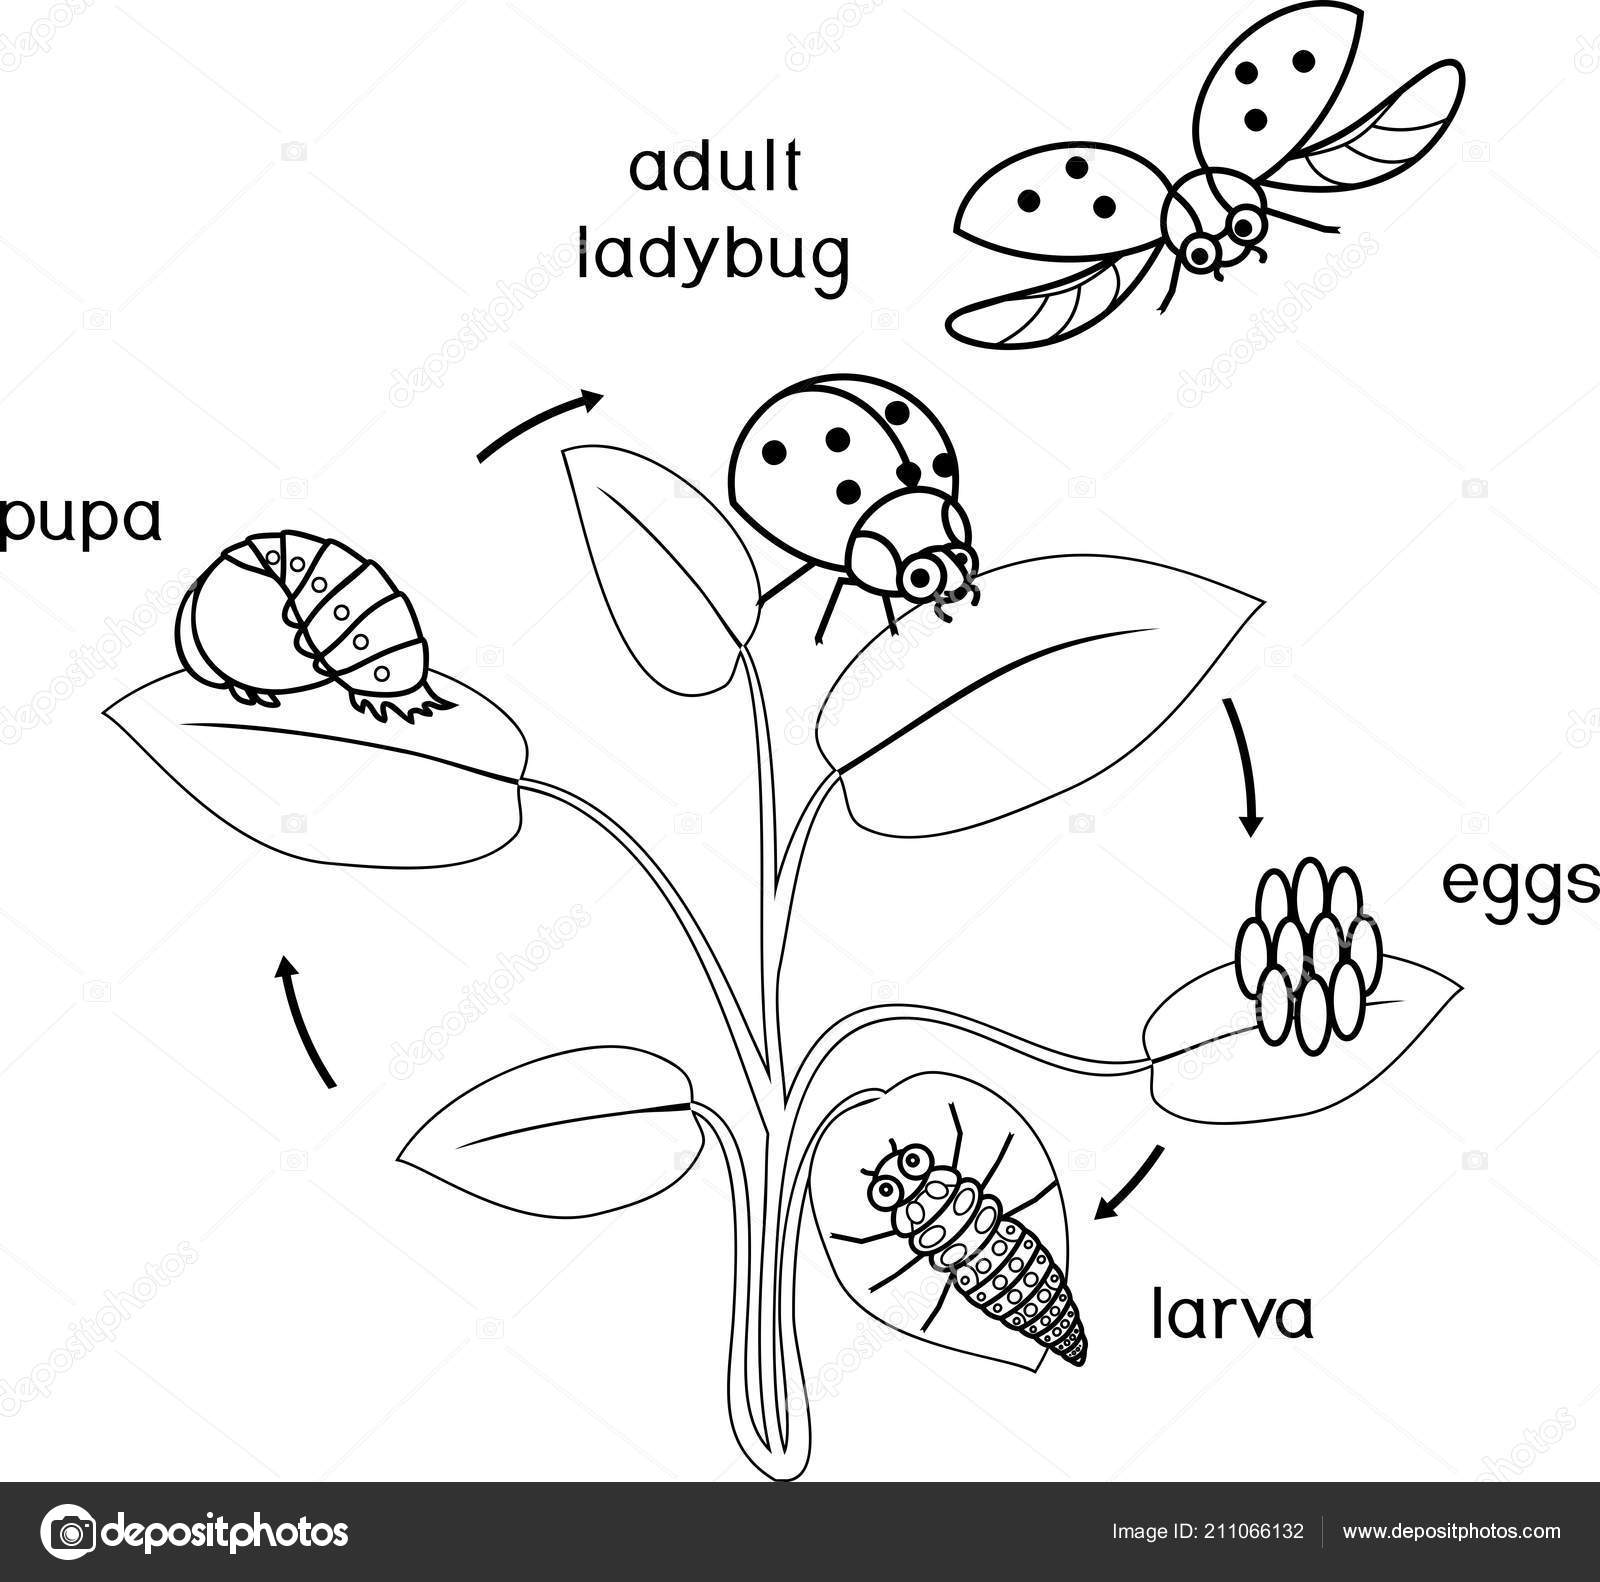 Life Cycle Ladybug Coloring Page Sequence Stages